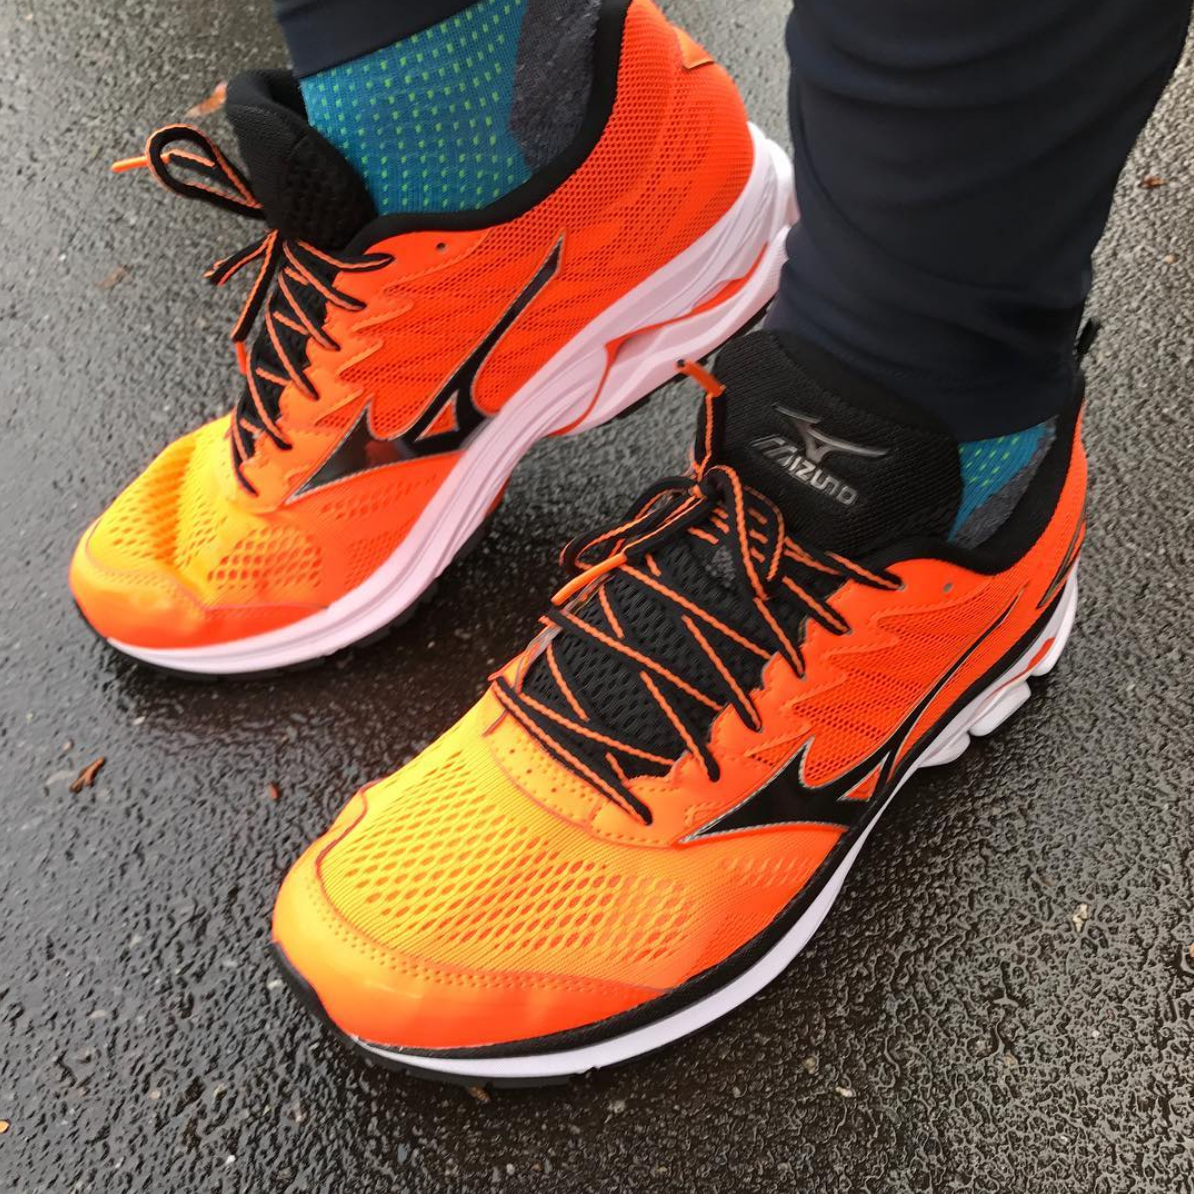 977ef7ea6a628 Mizuno-Wave-Rider-20-running-shoe-orange-laufschuh-sports-insider-test-erfahrungen.png